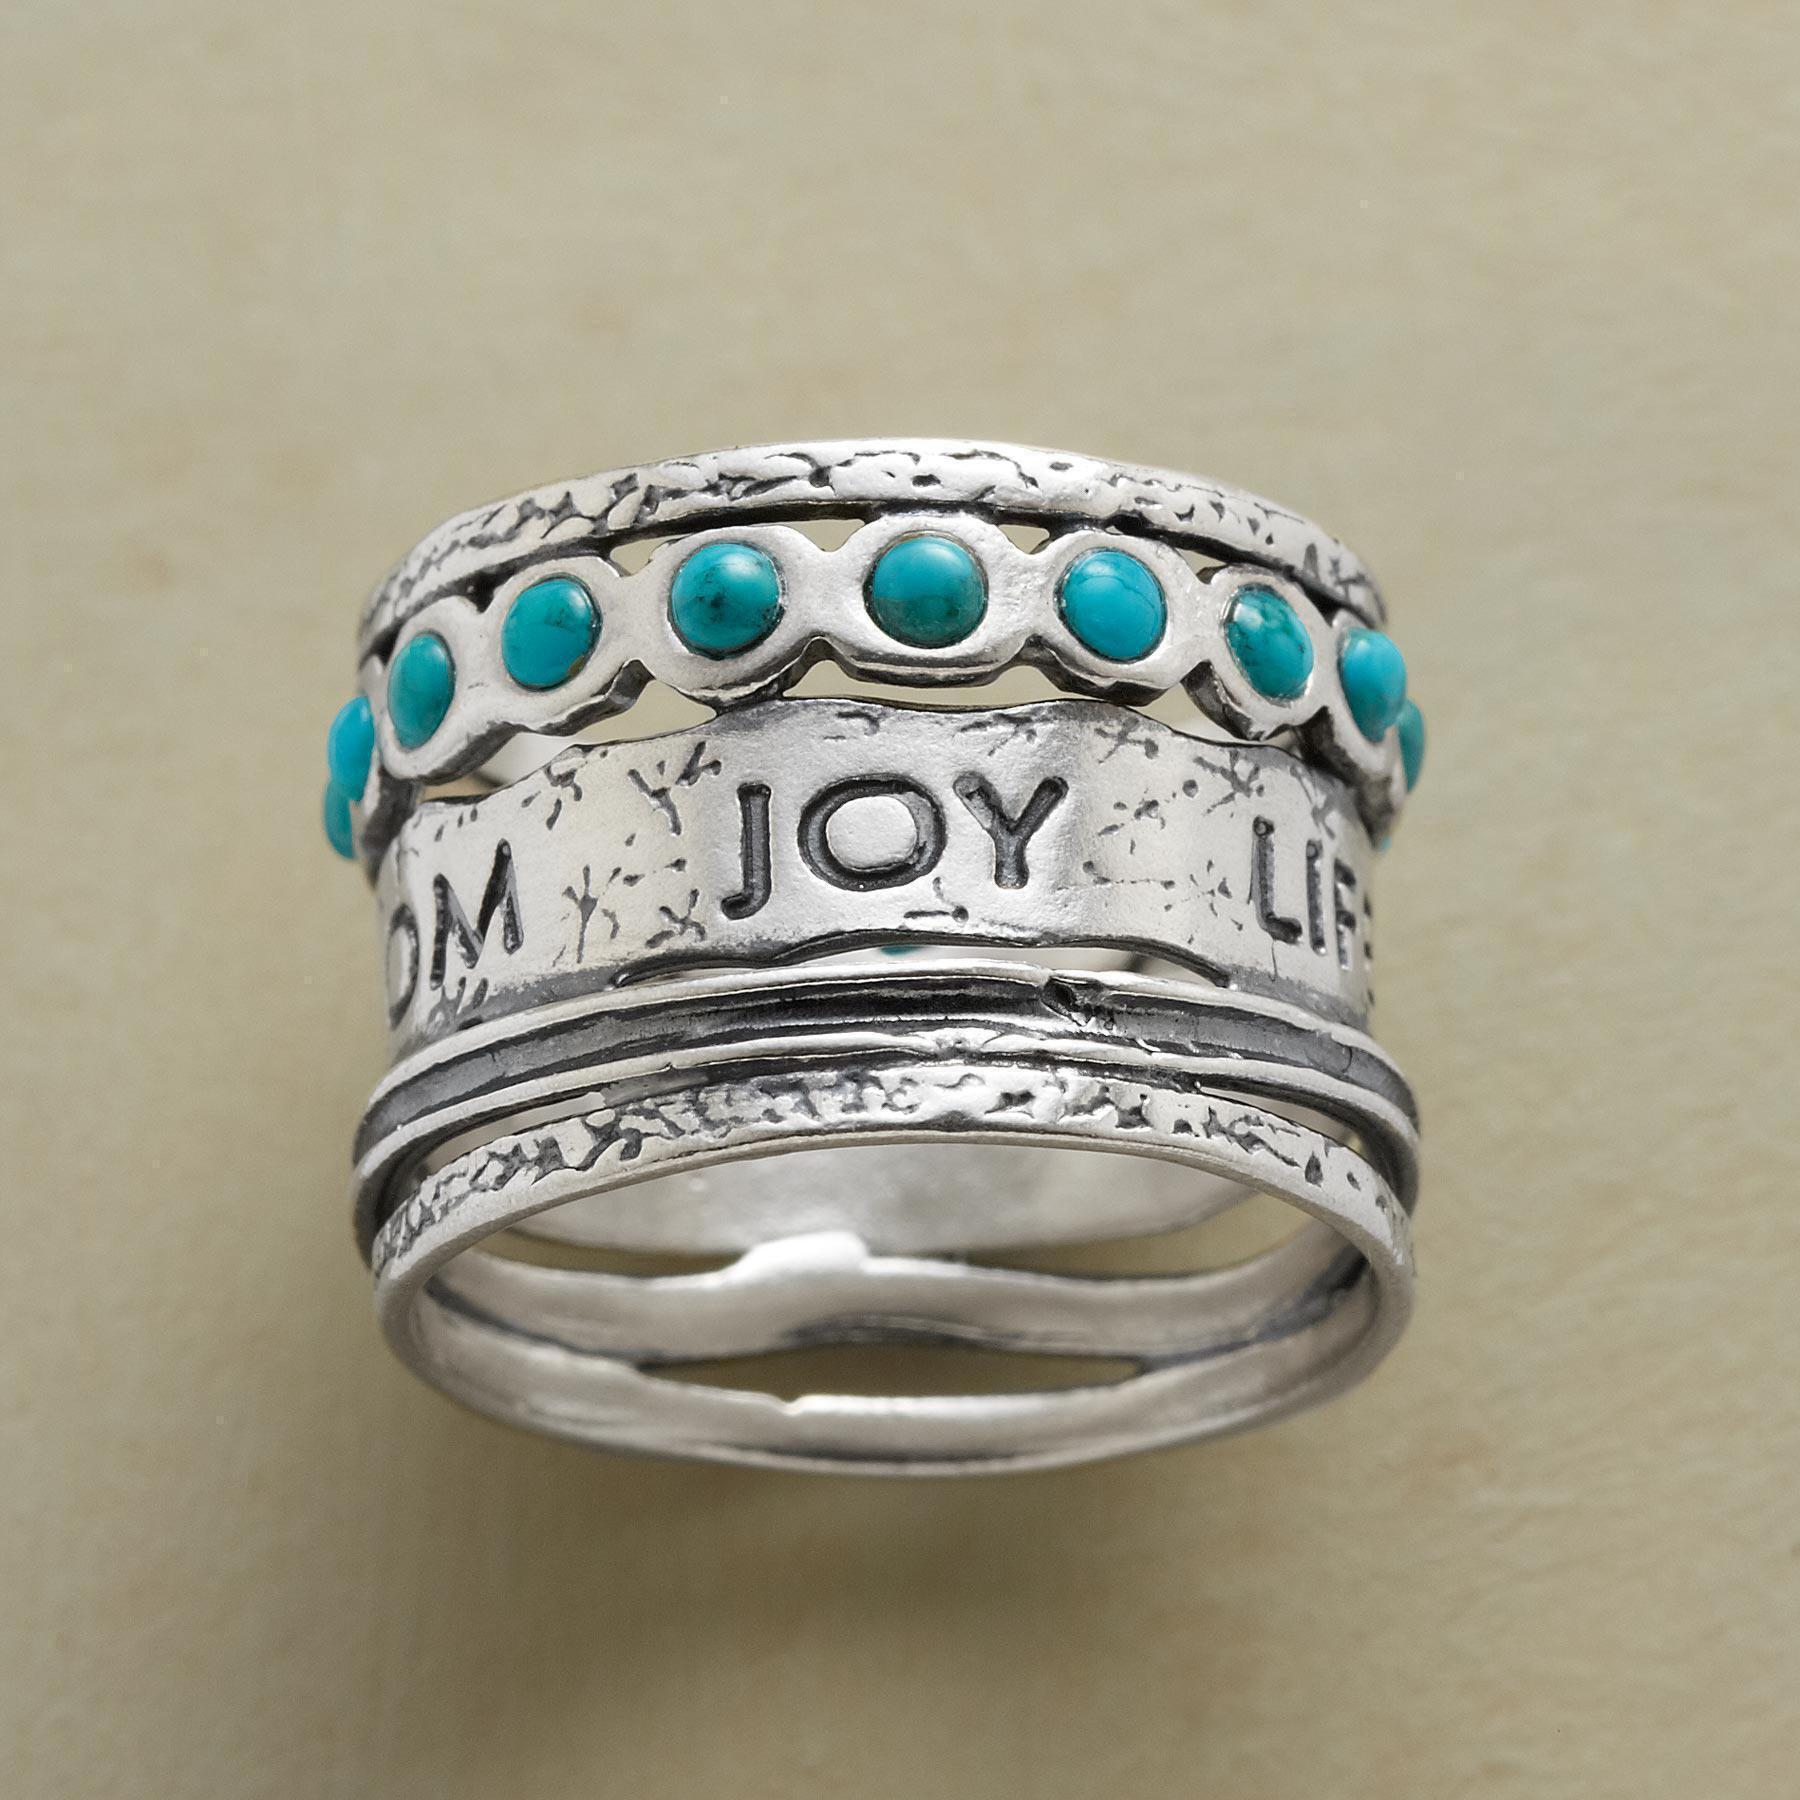 LIFE LOVERS RING: View 2